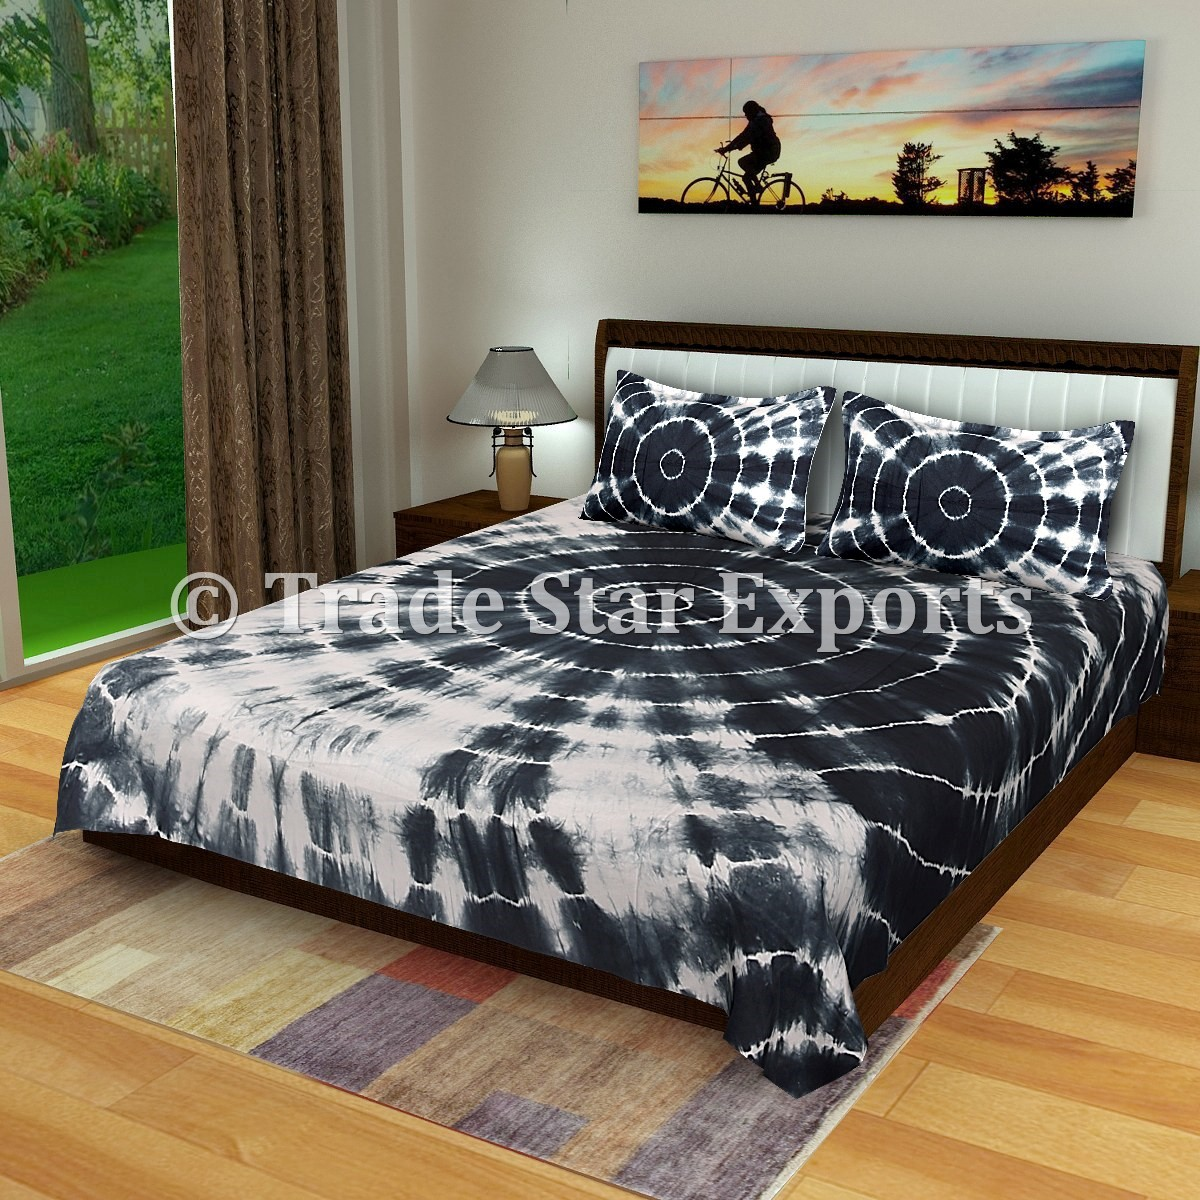 Gray Shibori Tie Dye Queen Bedding Set Trade Star Exports